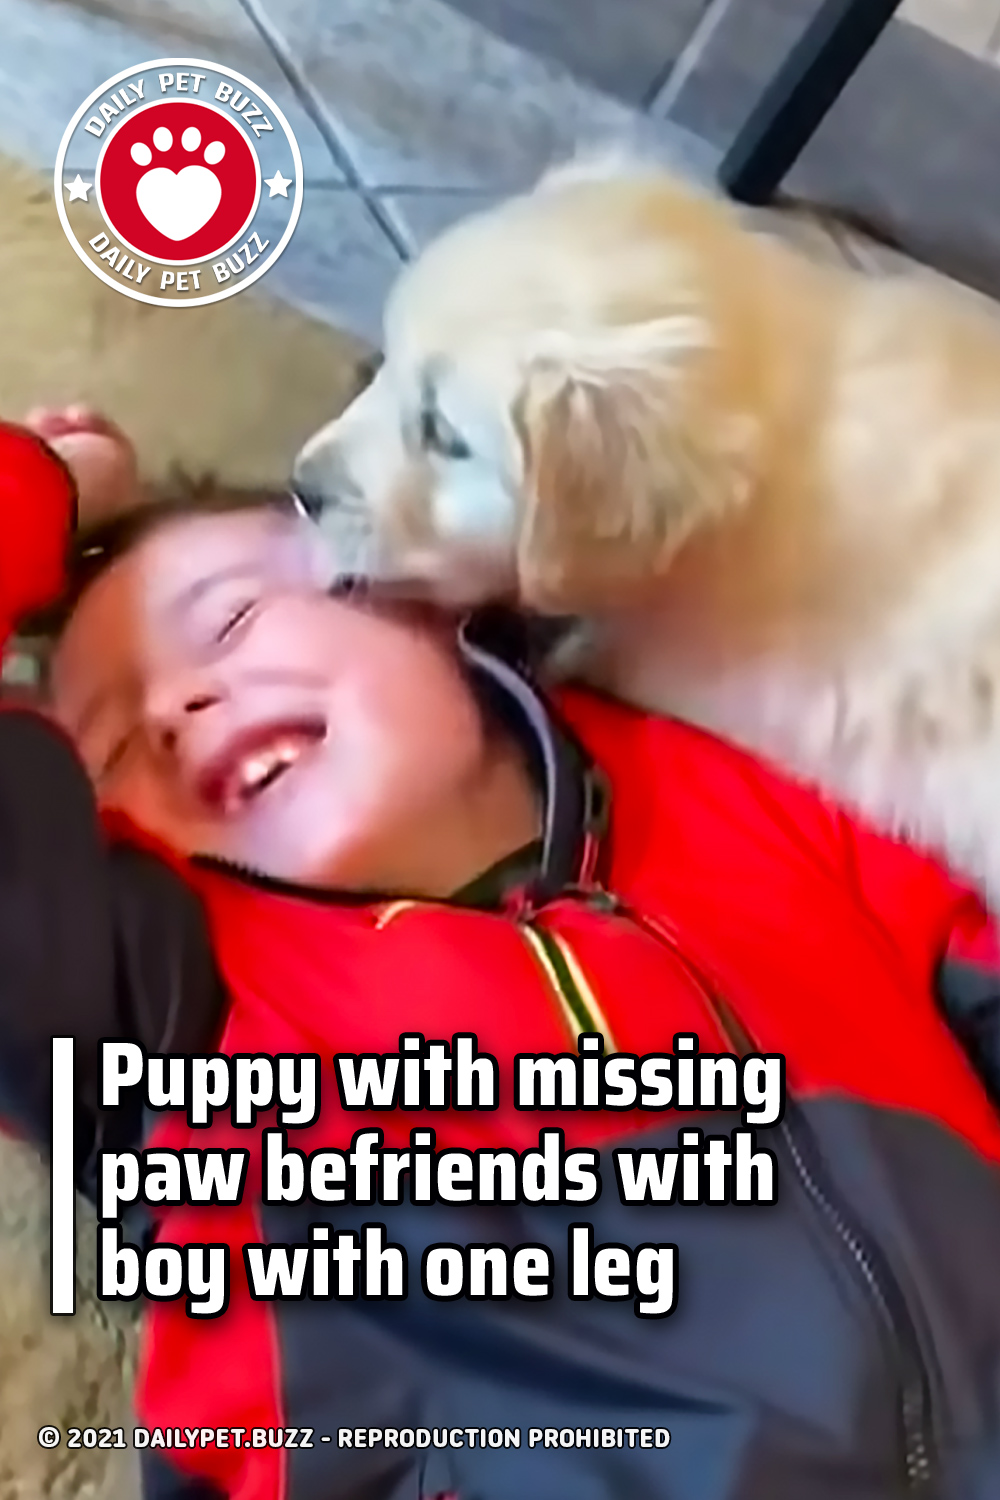 Puppy with missing paw befriends with boy with one leg